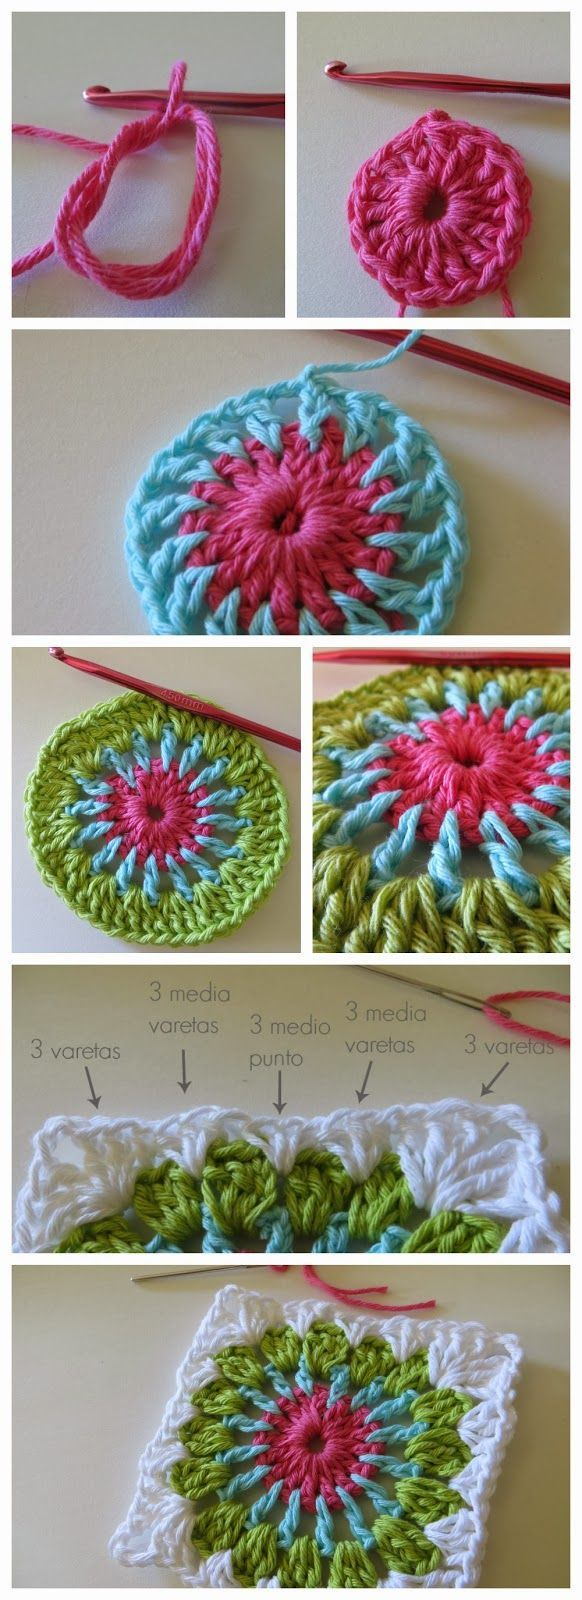 298 best images about crochet motives on pinterest - Como hacer cojines redondos ...